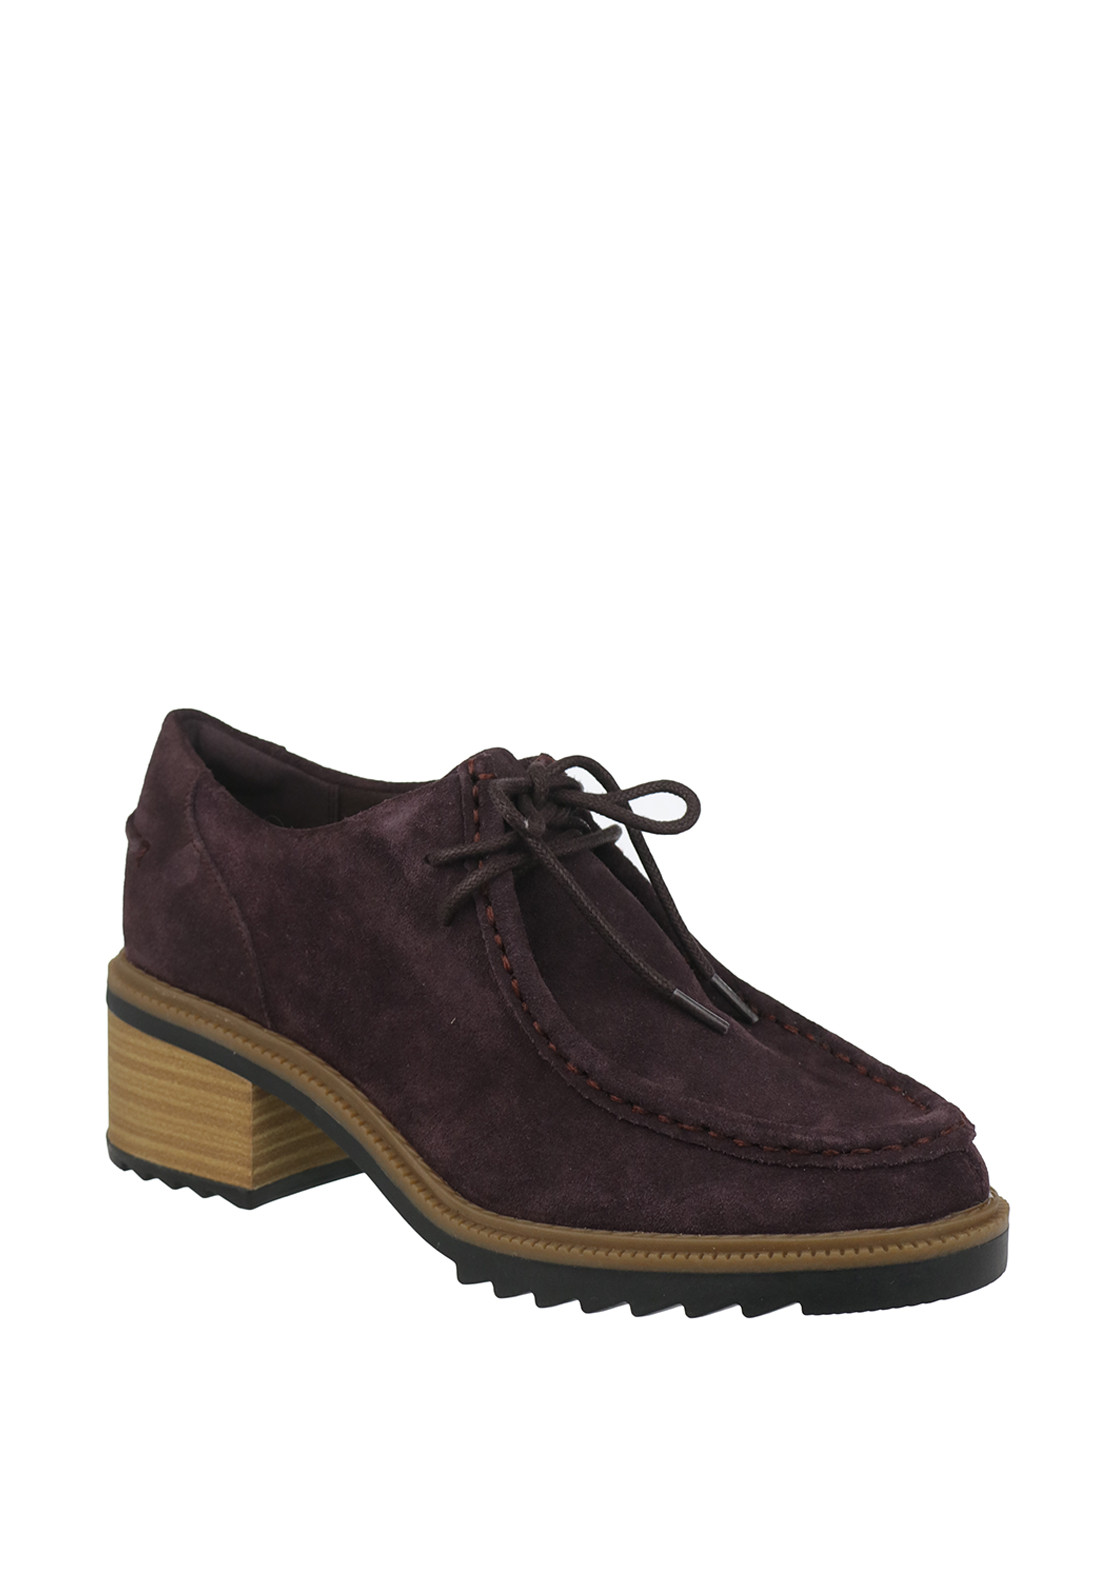 Clarks Womens Balmer Willow Suede Heeled Loafers, Aubergine Purple